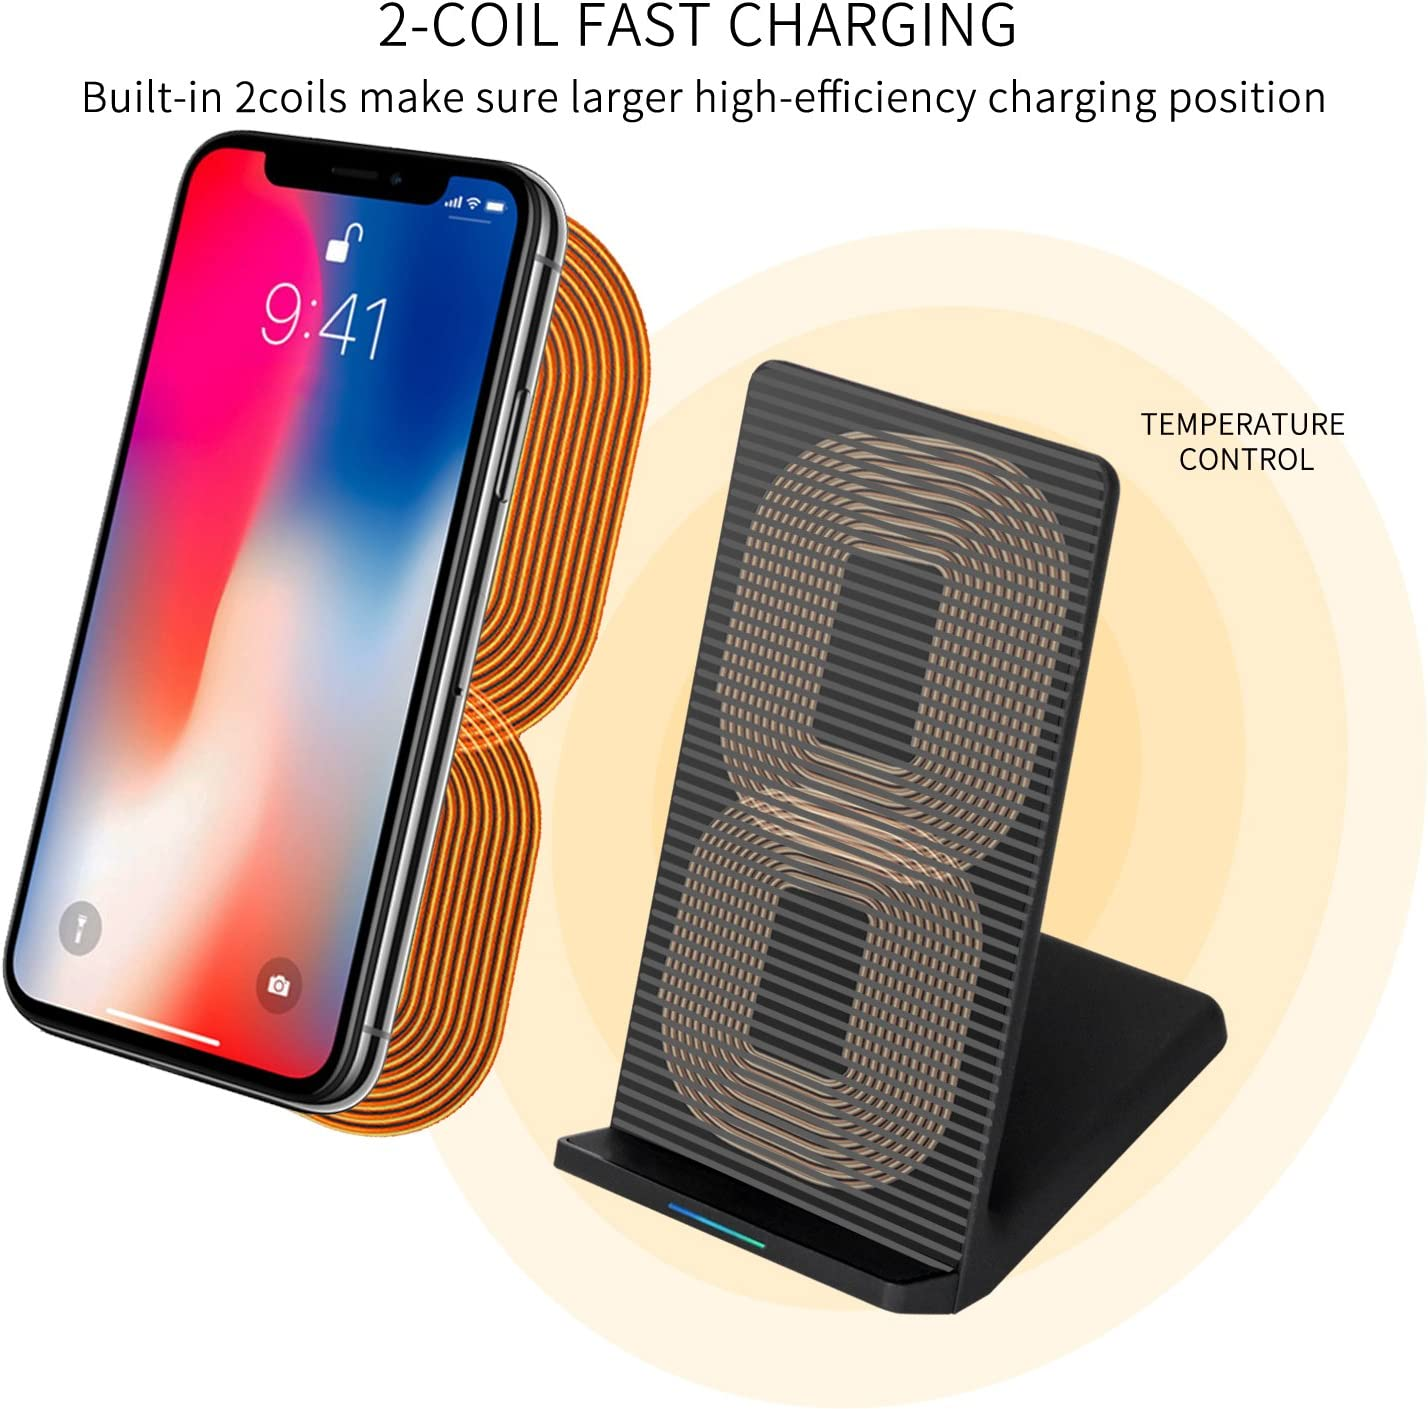 iPhone X iPhone 8//8 Plus Cooling Fan, 2 Coils Charging Stand Pad Station FindUWill Fast Wireless Charger for Samsung Galaxy Note 8 S8 Plus S7 Edge